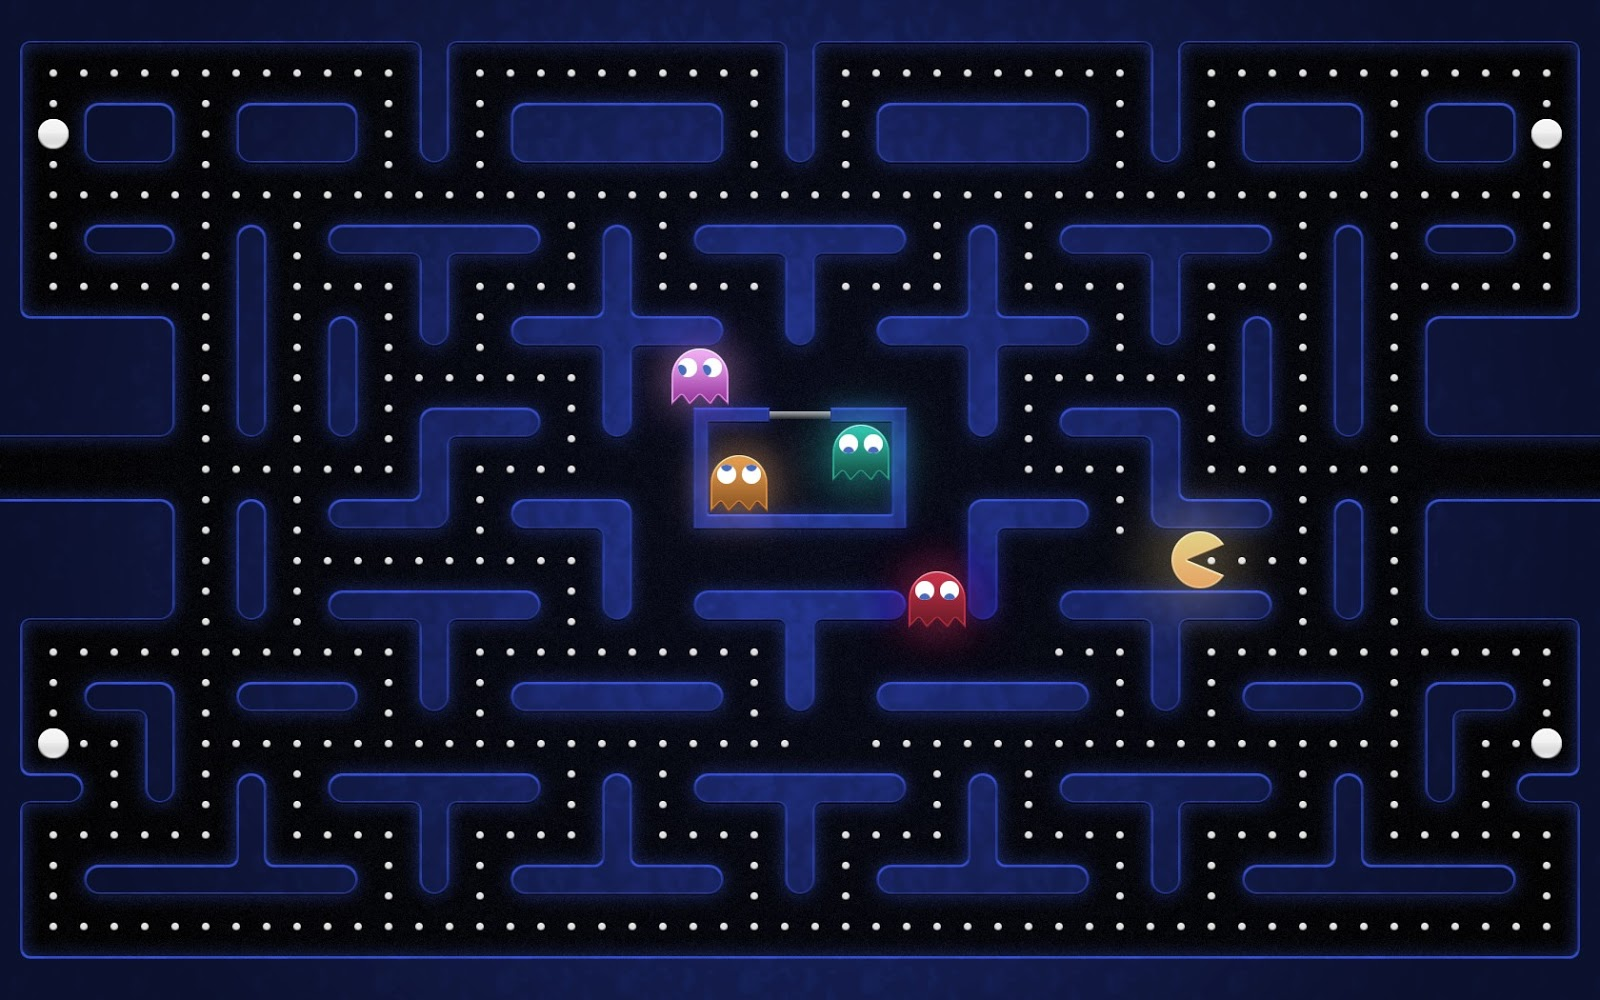 Old school game pacman desktop wallpaper 1600x1000